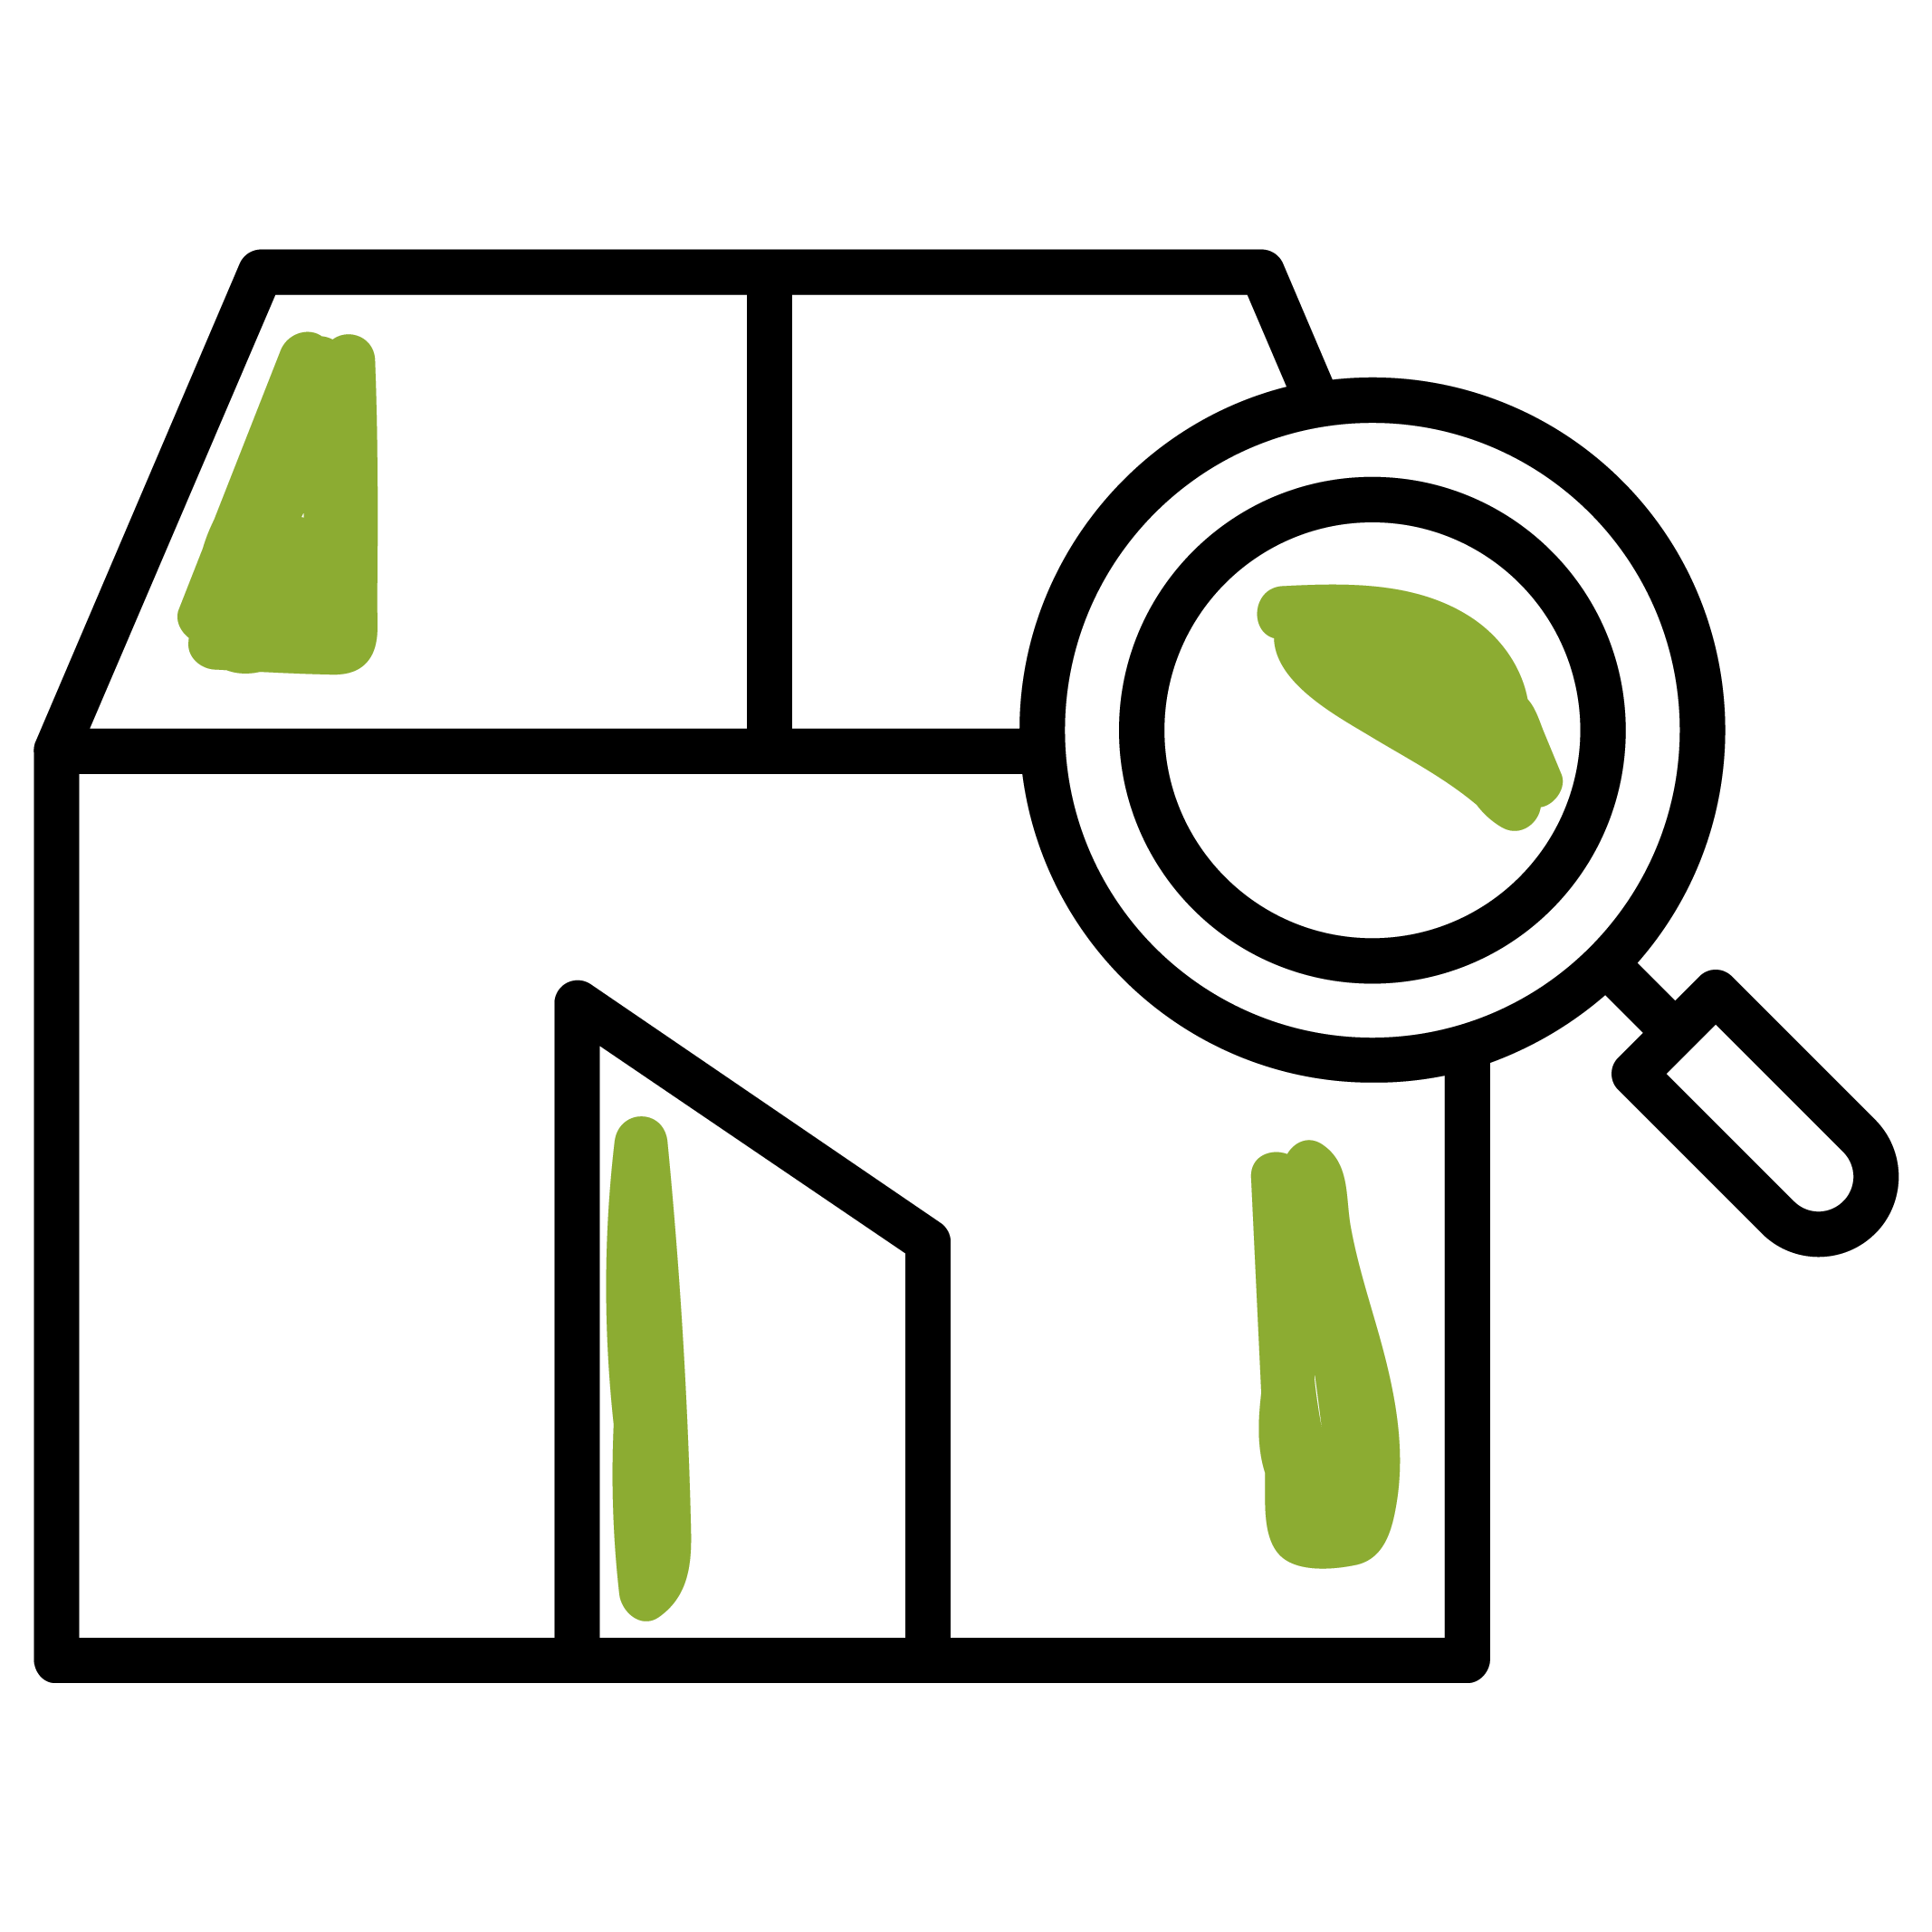 Building inspections with Kizeo Forms